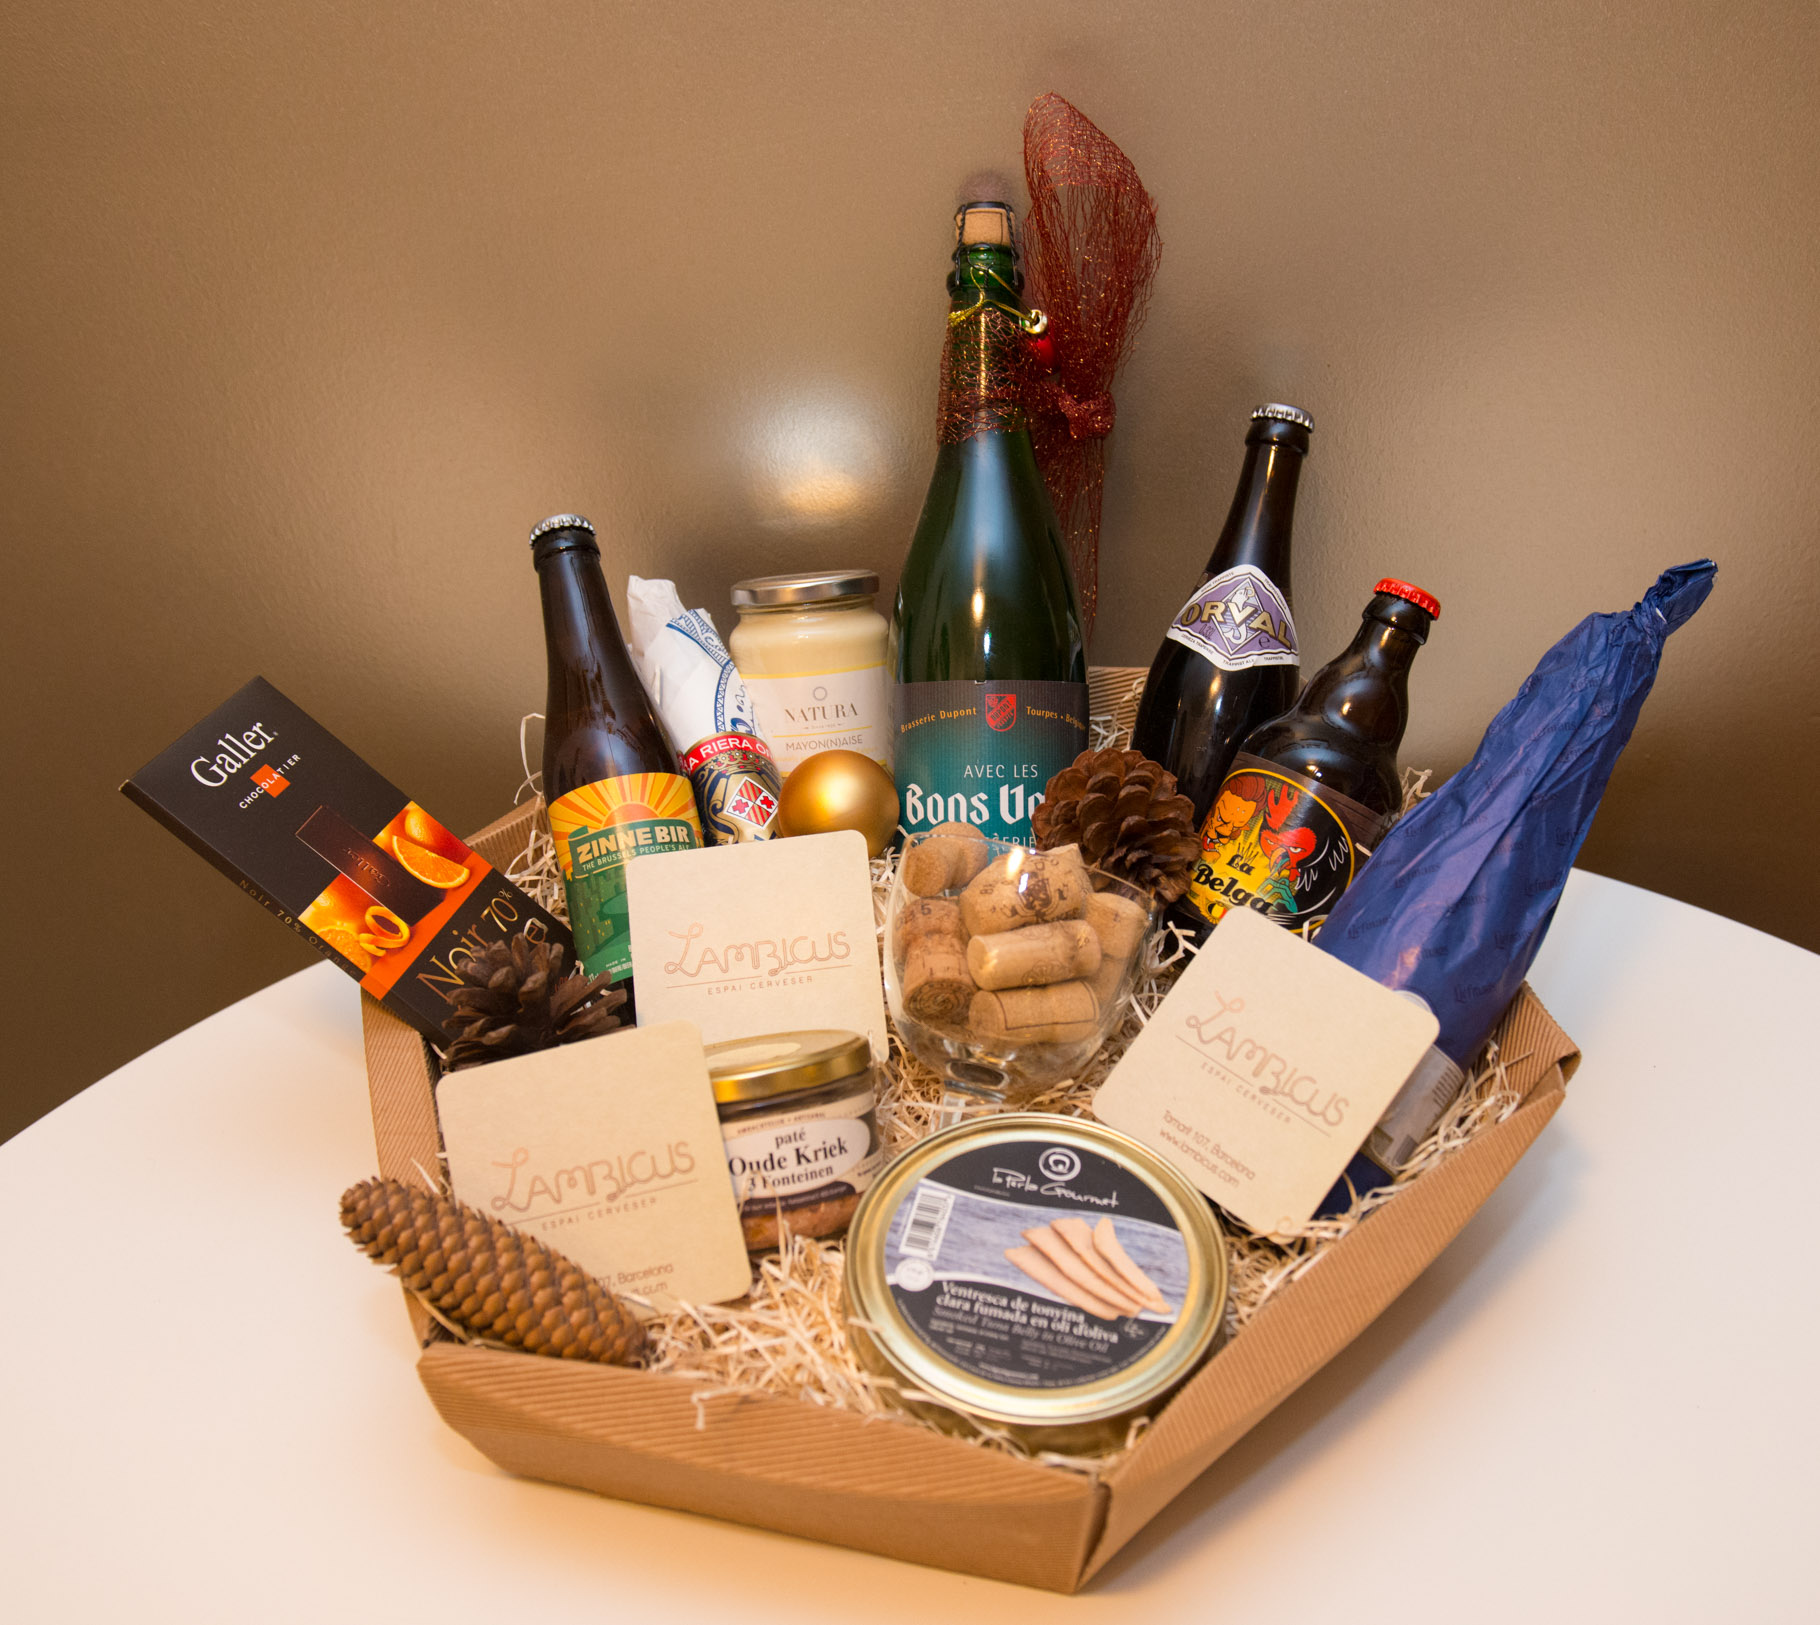 Lambicus - Christmas hampers & invisible friends